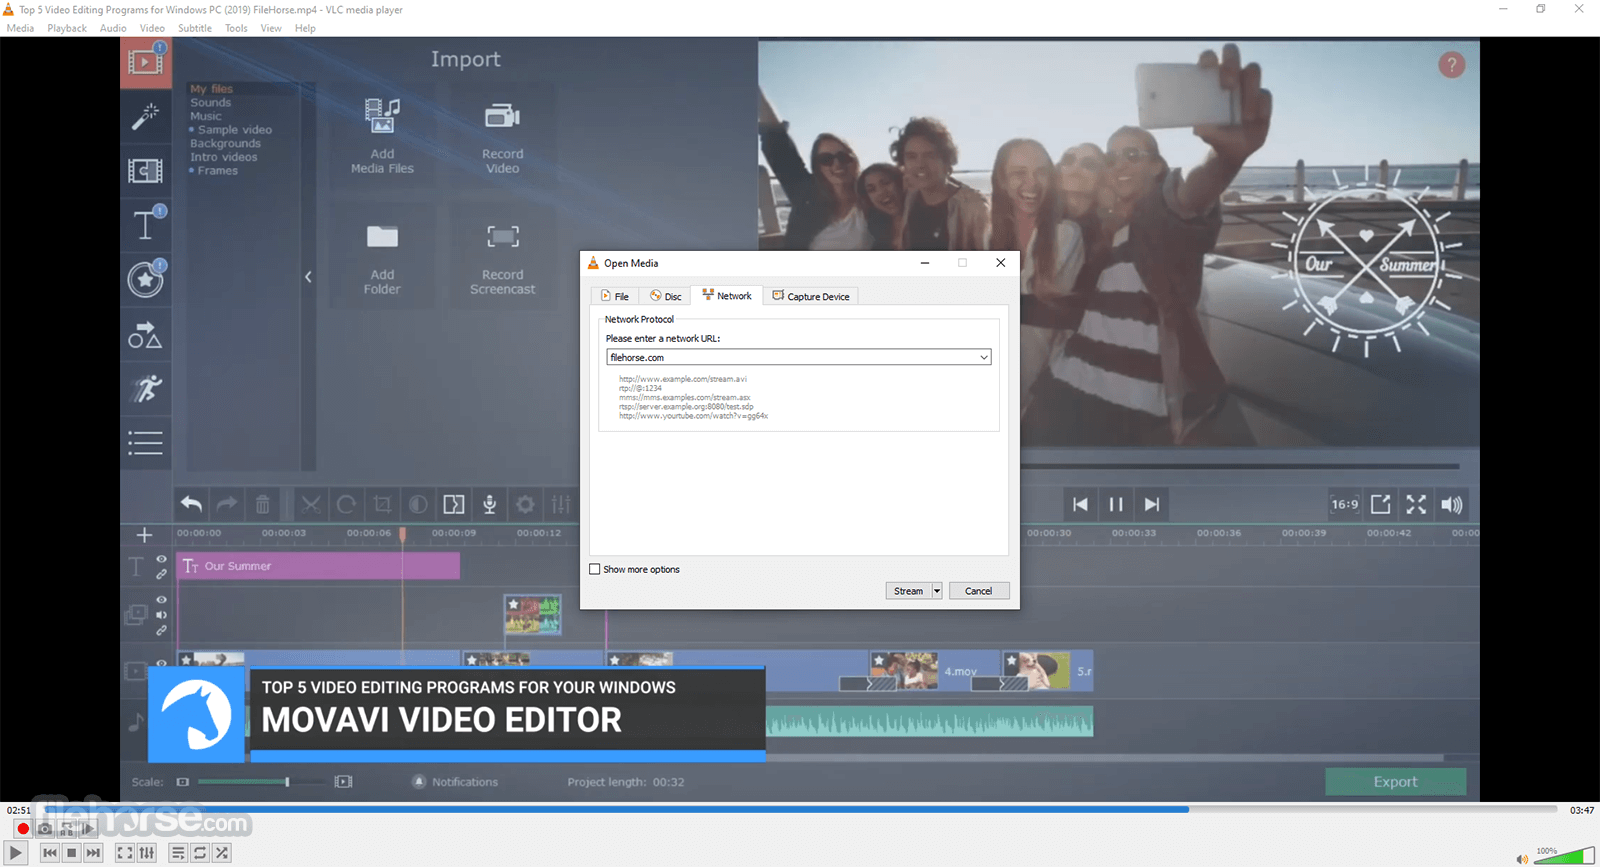 VLC Media Player 2.2.6 (32-bit) Screenshot 3